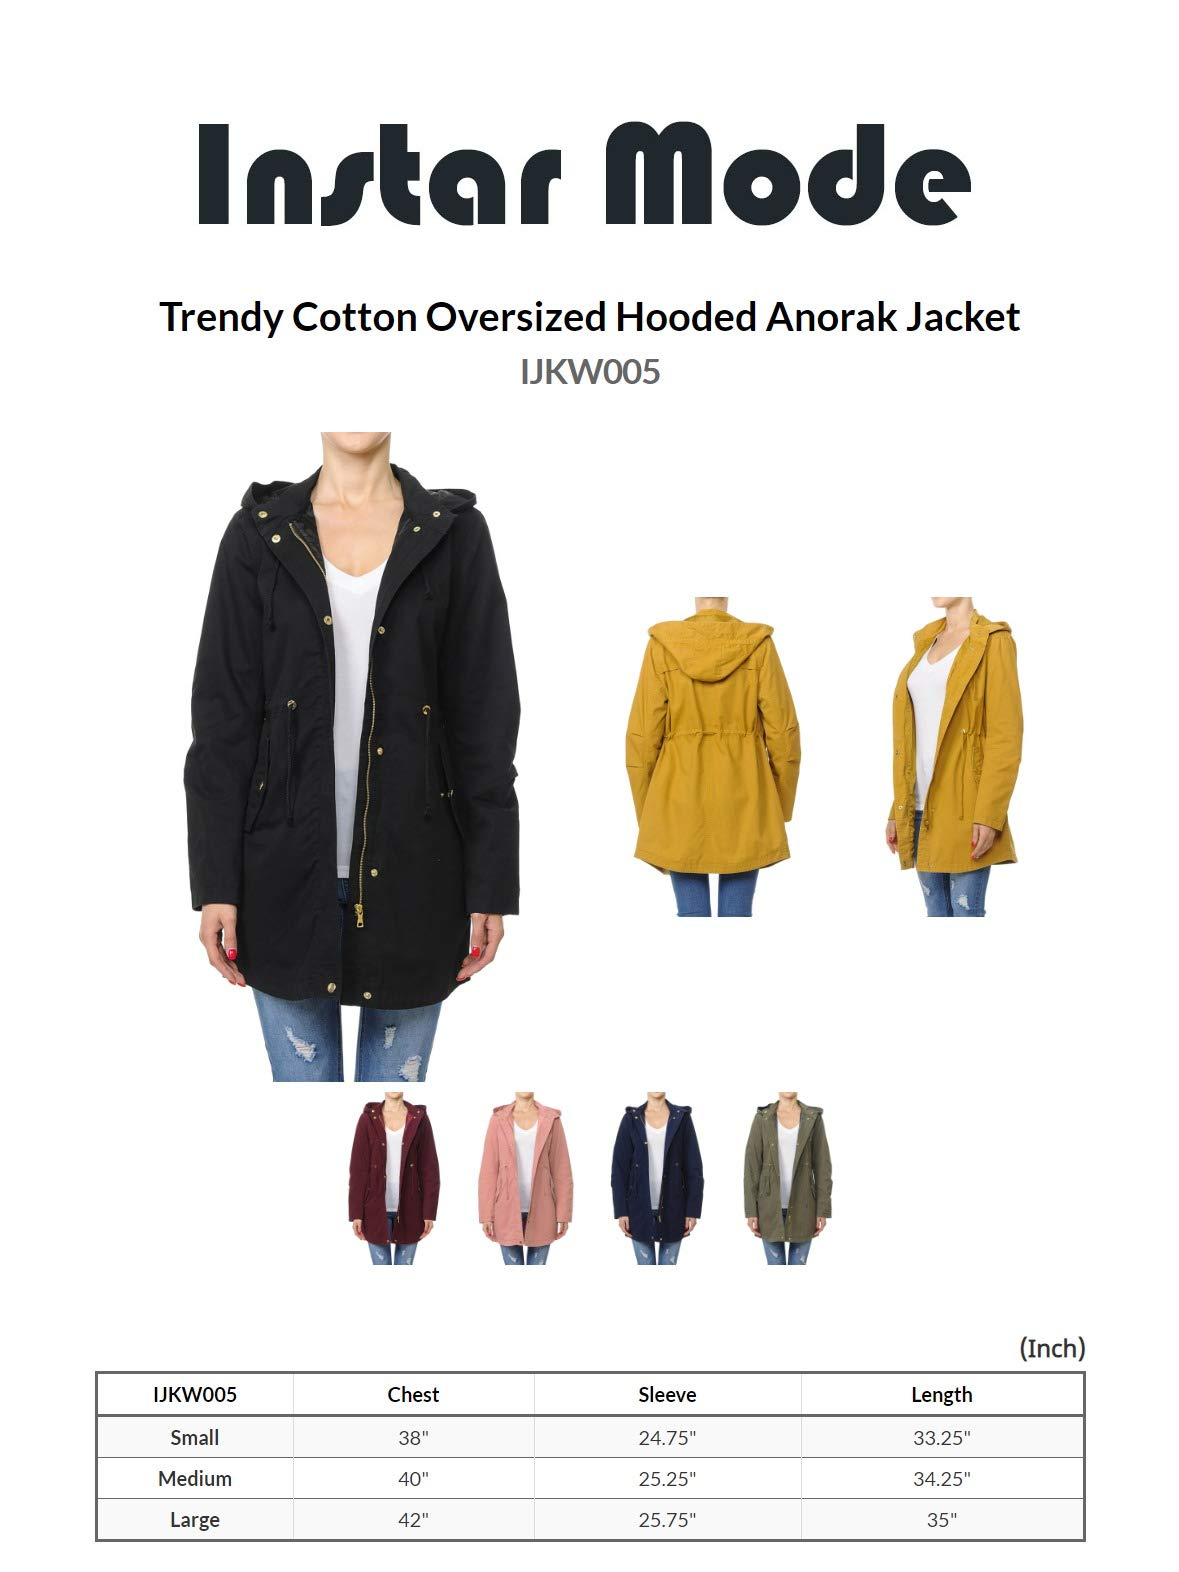 Instar Mode Women's Trendy Cotton Oversized Hooded Anorak Jacket Olive L by Instar Mode (Image #5)